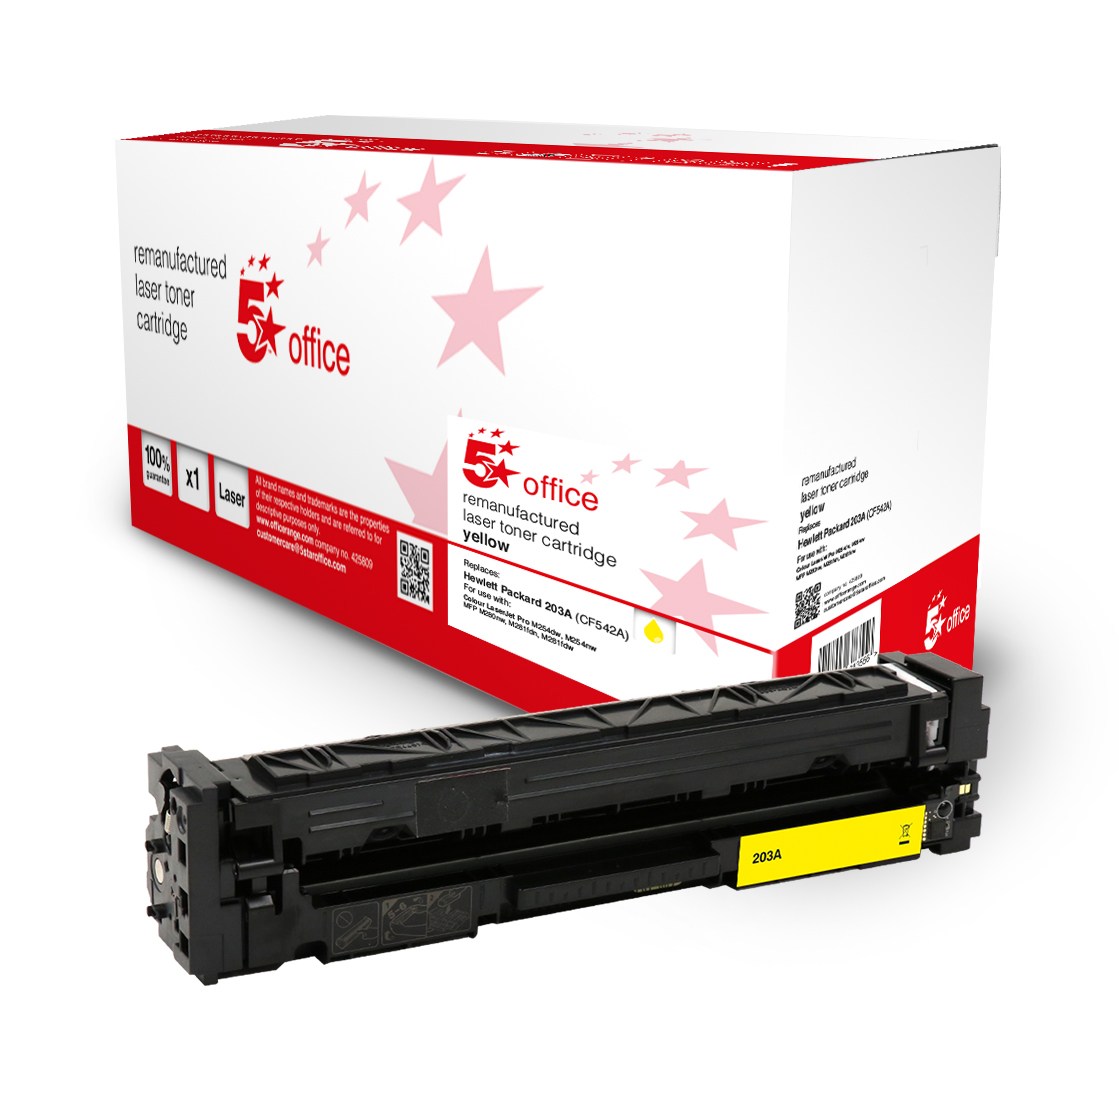 5 Star Office Remanufactured Toner Cartridge Page Life Yellow 1300pp HP 203A CF542A Alternative